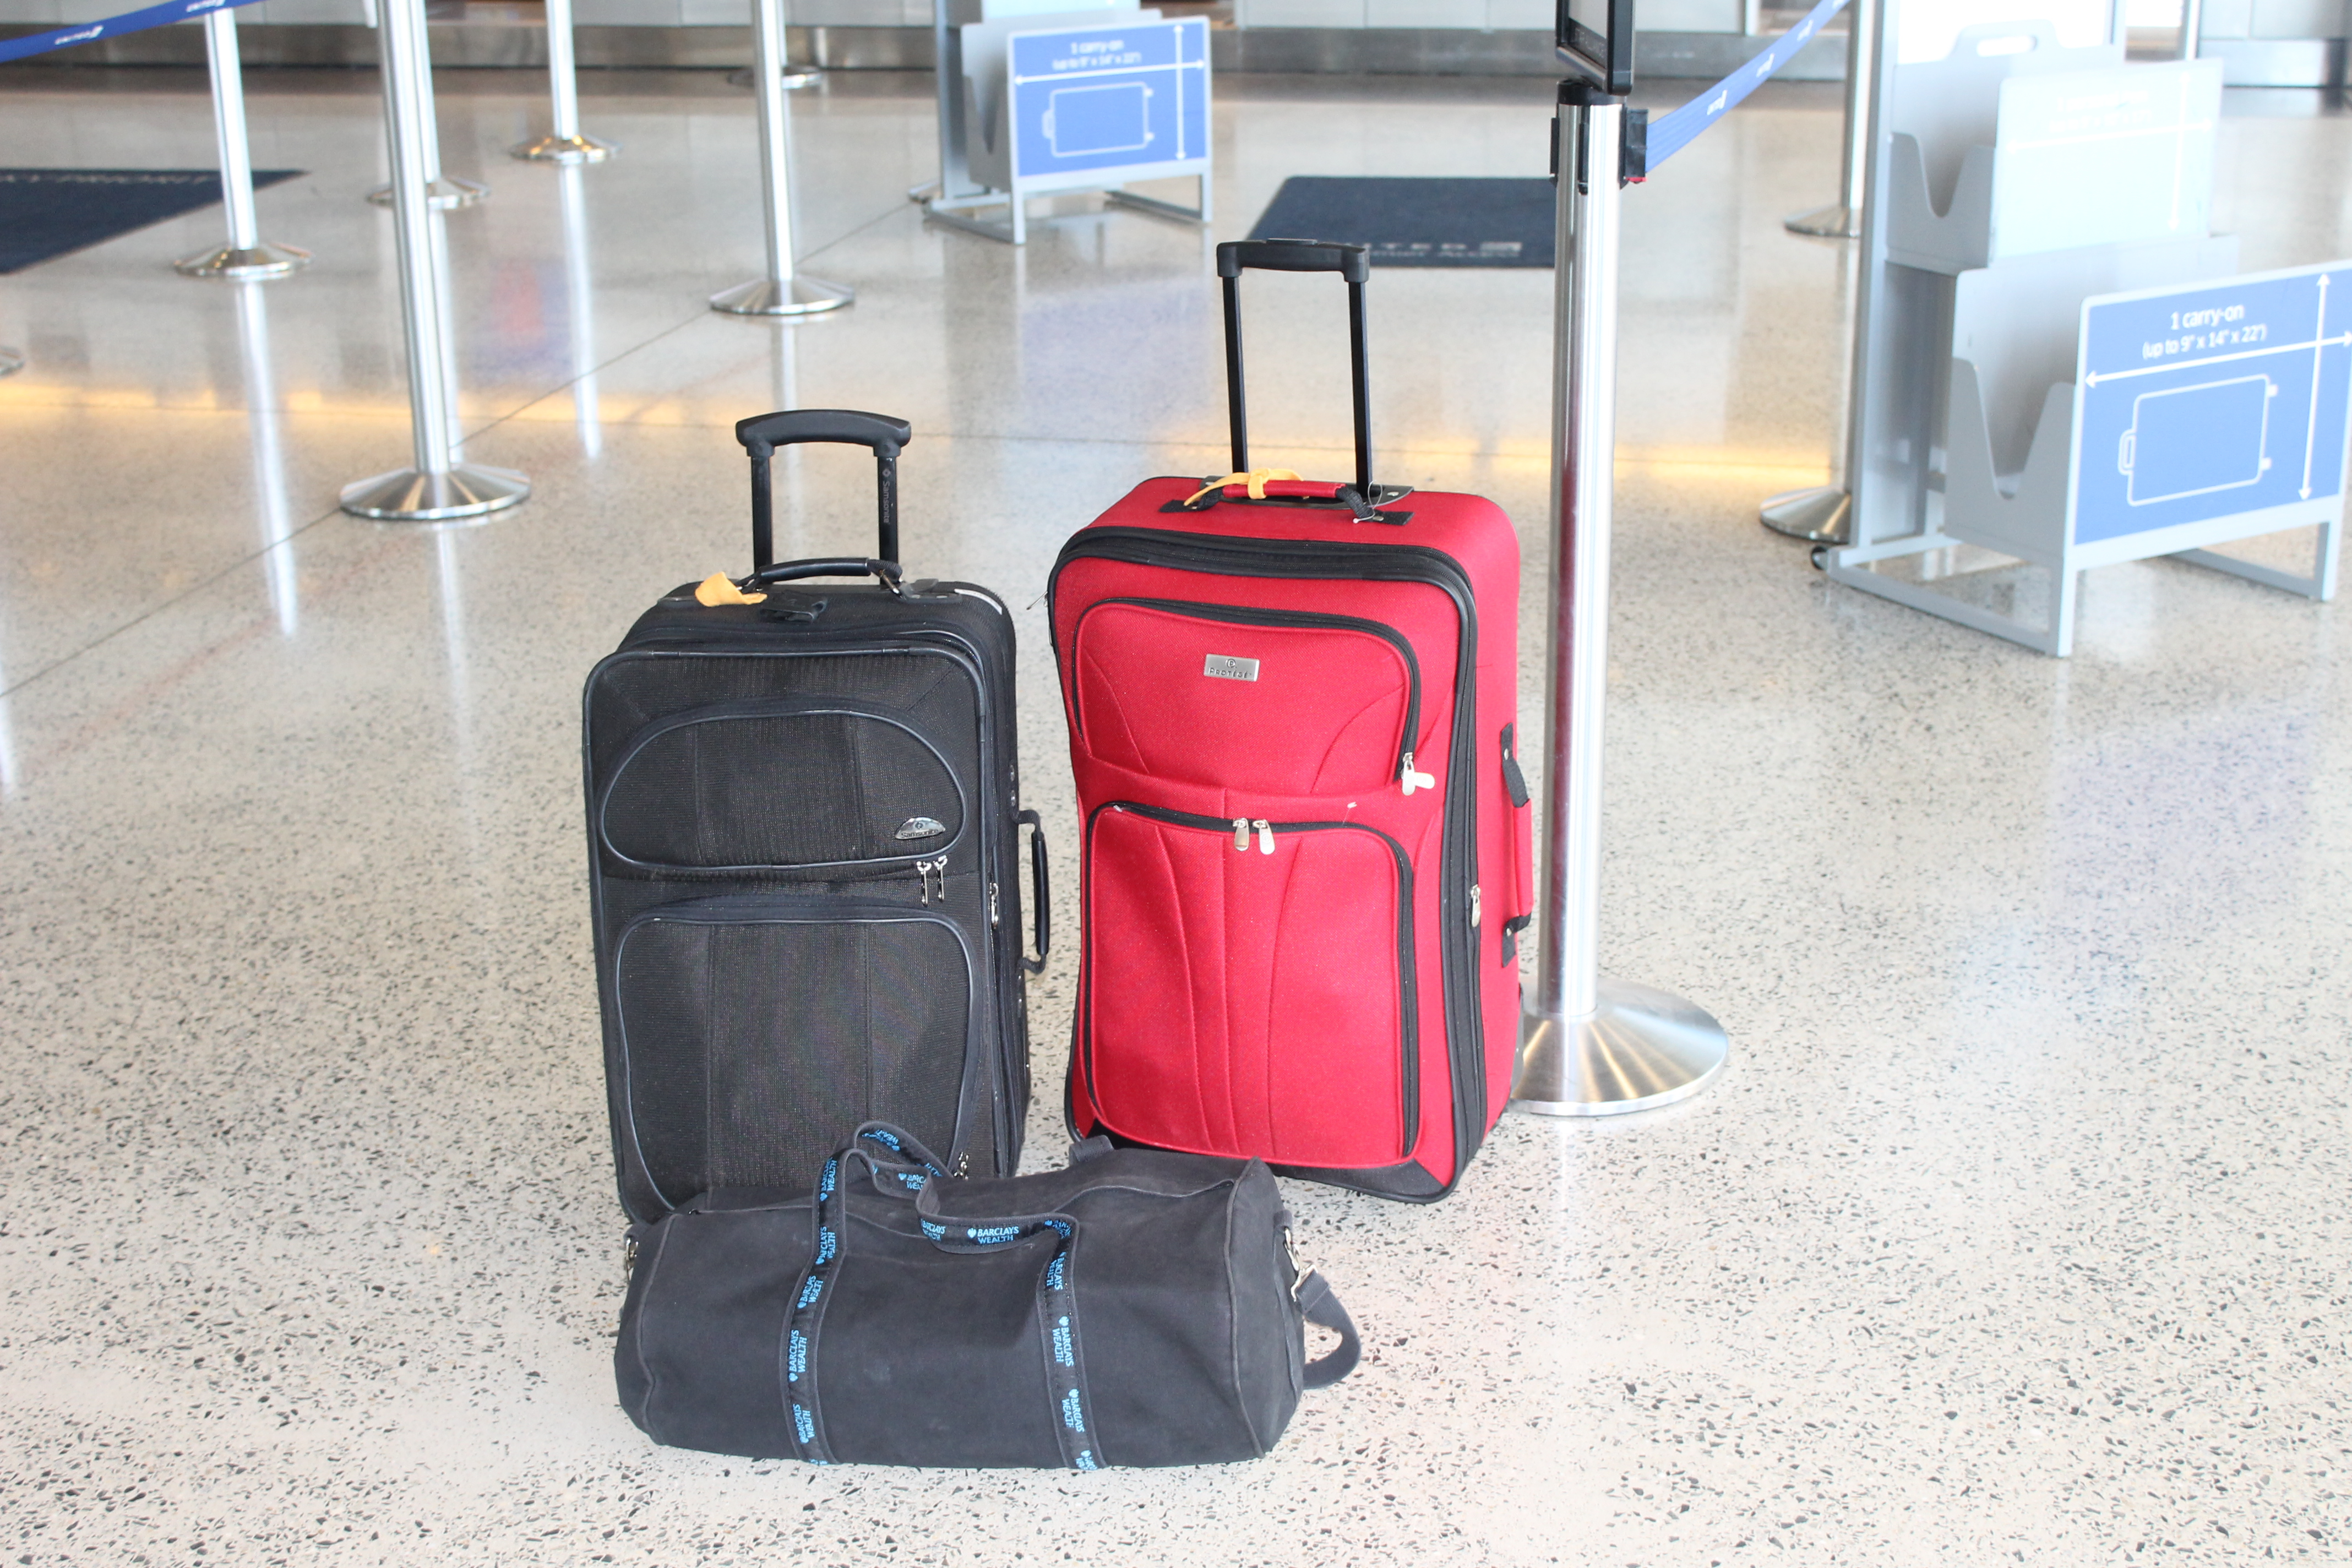 Ryanair brings in new rules on cabin bags - In-depth Discussions - People s  Forum 0644b2346a